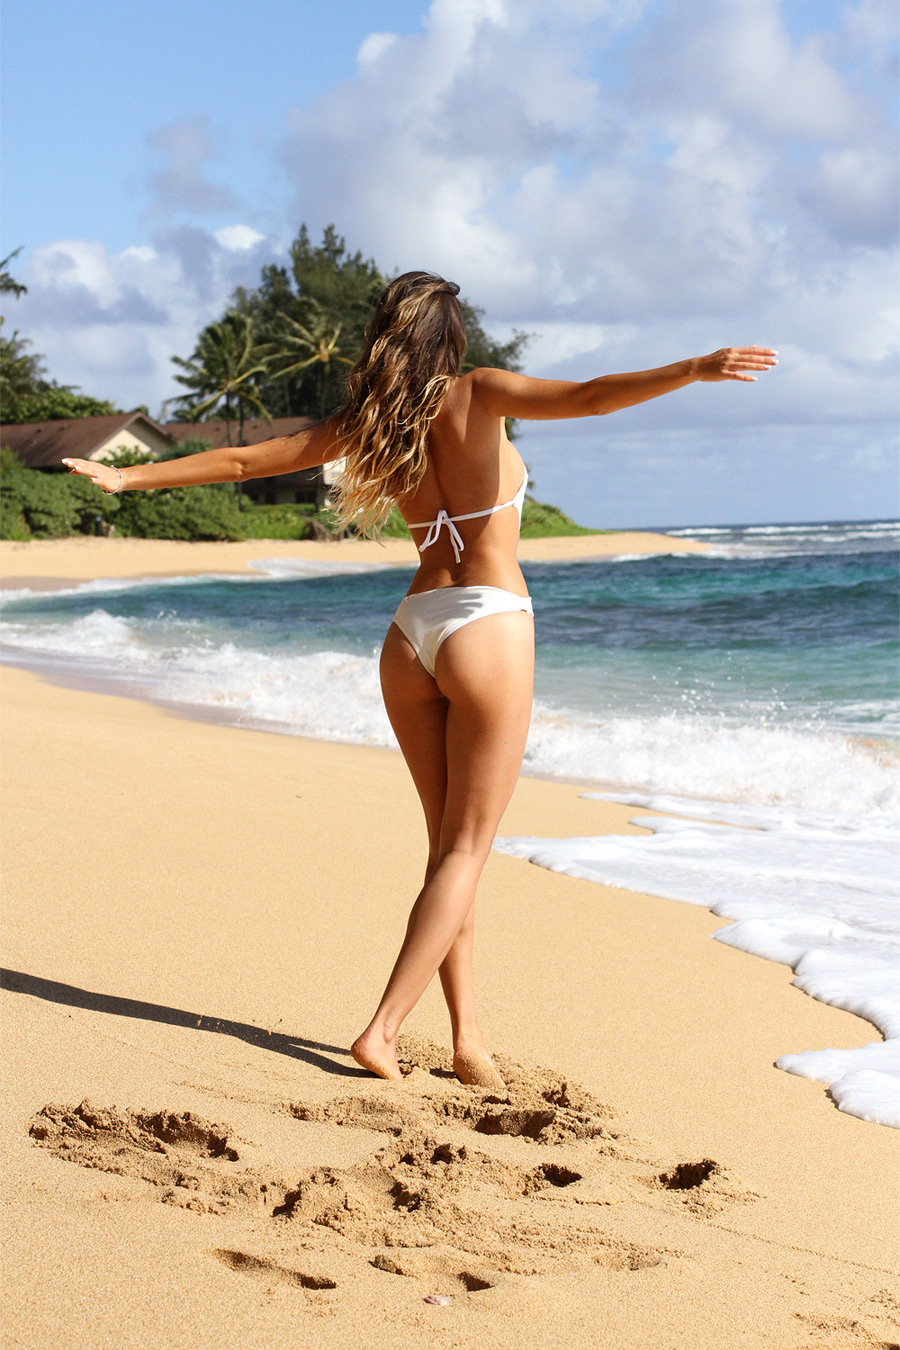 Ulia Ali is a beach bunny. Hawaii bum